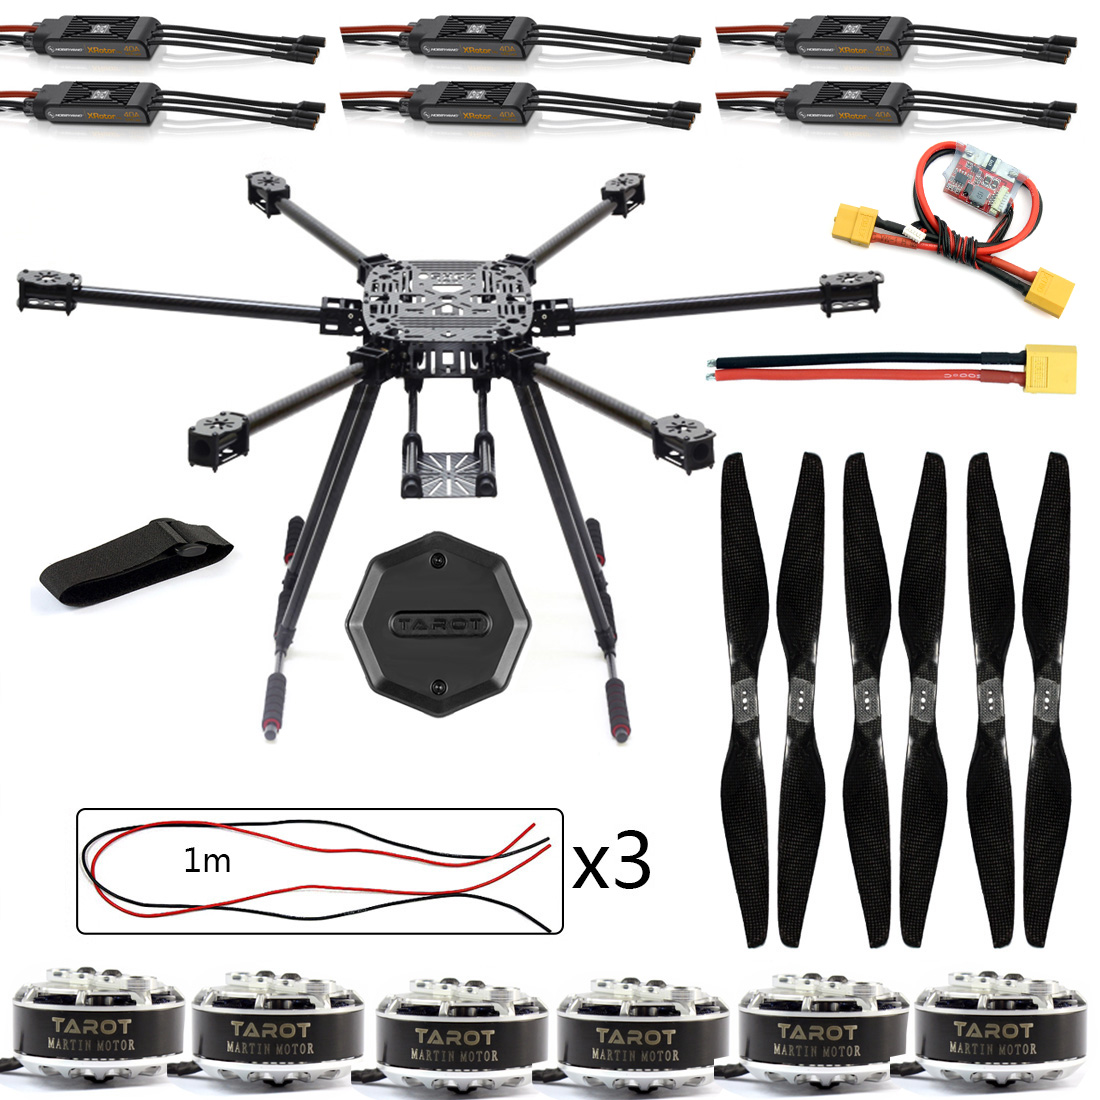 DIY ZD850 Frame Kit with Landing Gea 40A Brushless ESC Propellers XT60 Plug +Hub RC 6-axle Hexacopter F19833-A diy drone set zd850 frame kit with landing gear 620kv motor 40a brushless esc propellers xt60 plug hub for rc 6 axle hexacopter